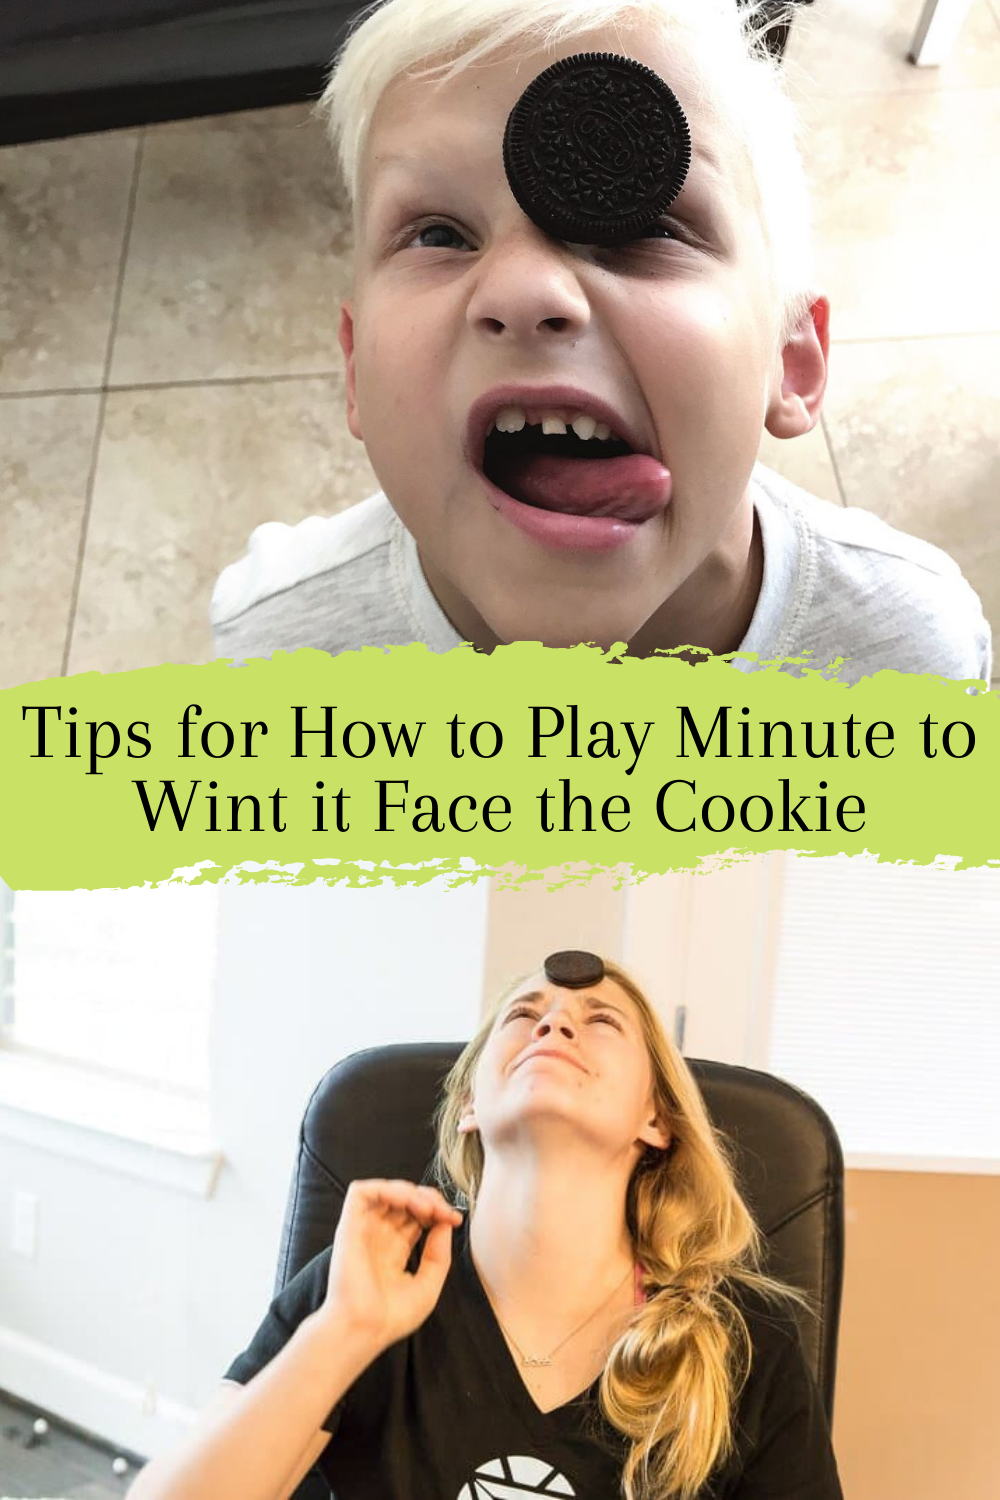 Tips for Playing Cookie Game minute to win it